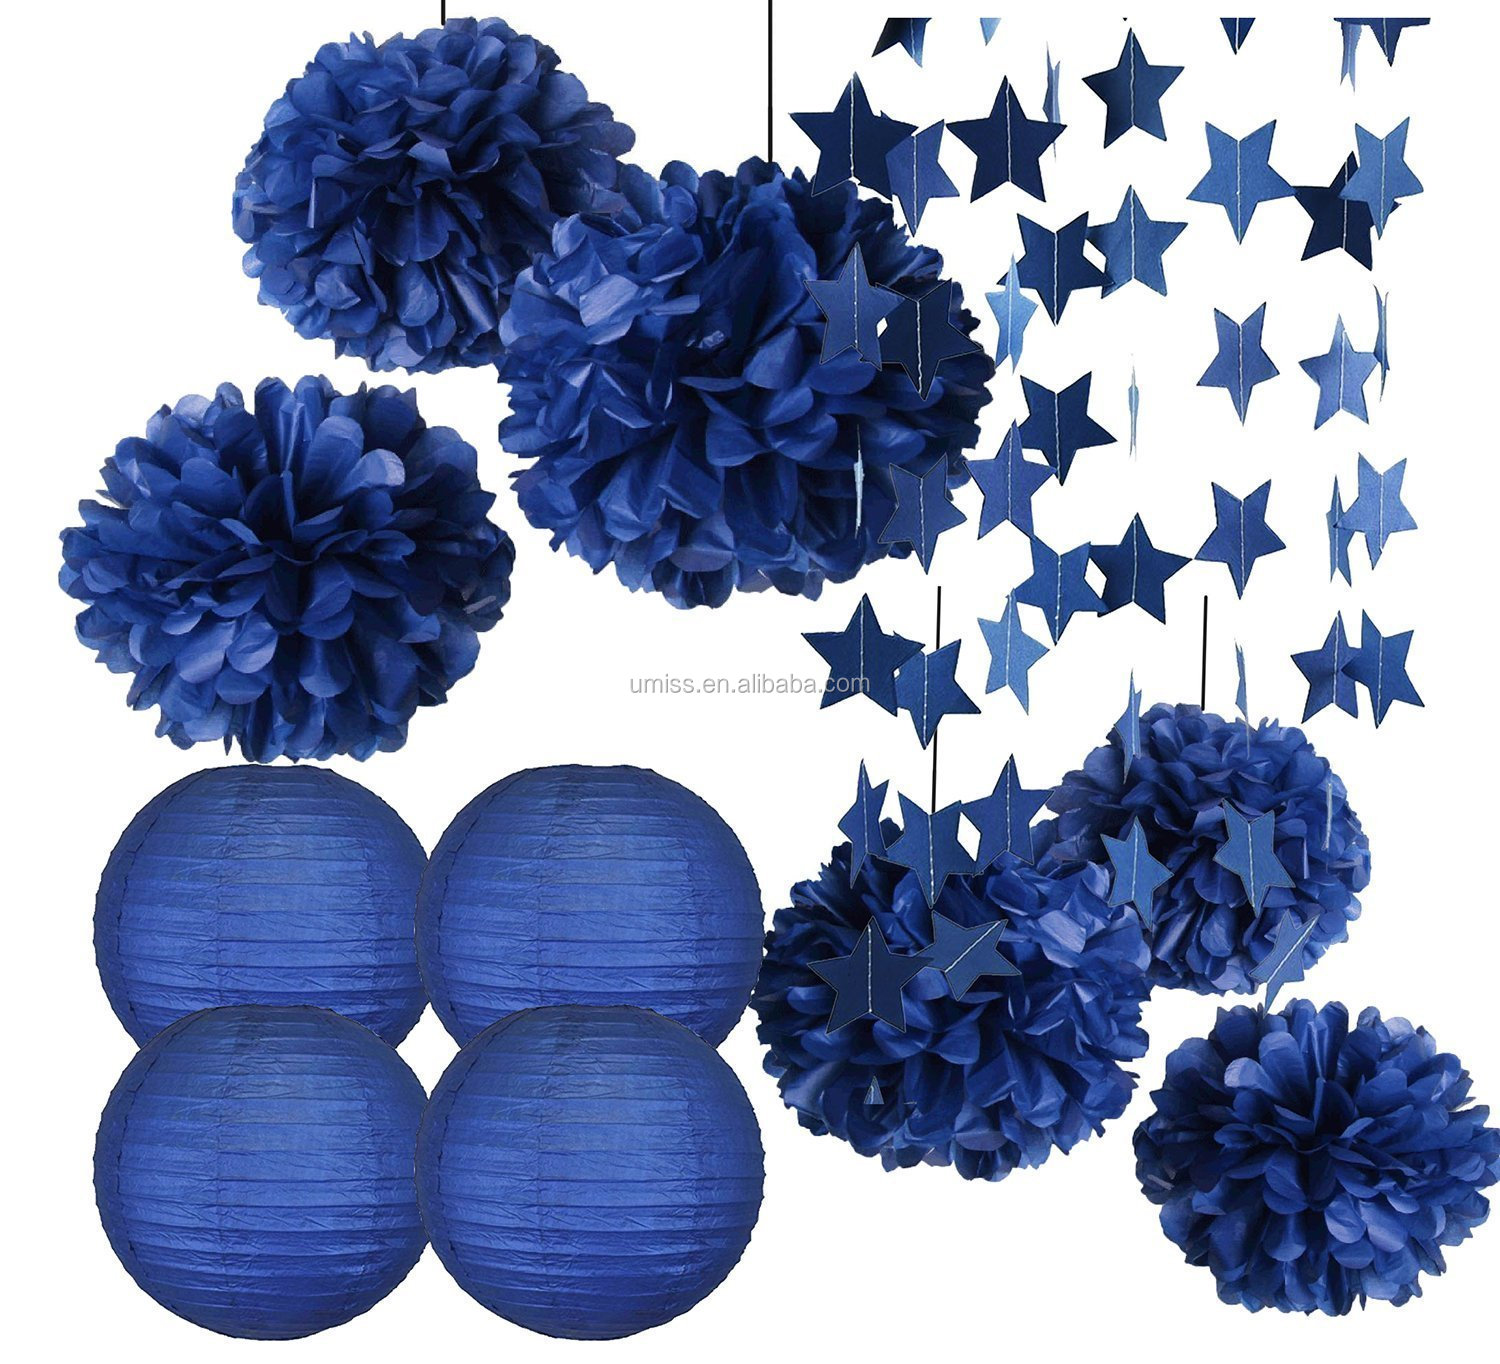 Umiss star garland paper pom pom lanterns set for july 4th 814vzukjzol izmirmasajfo